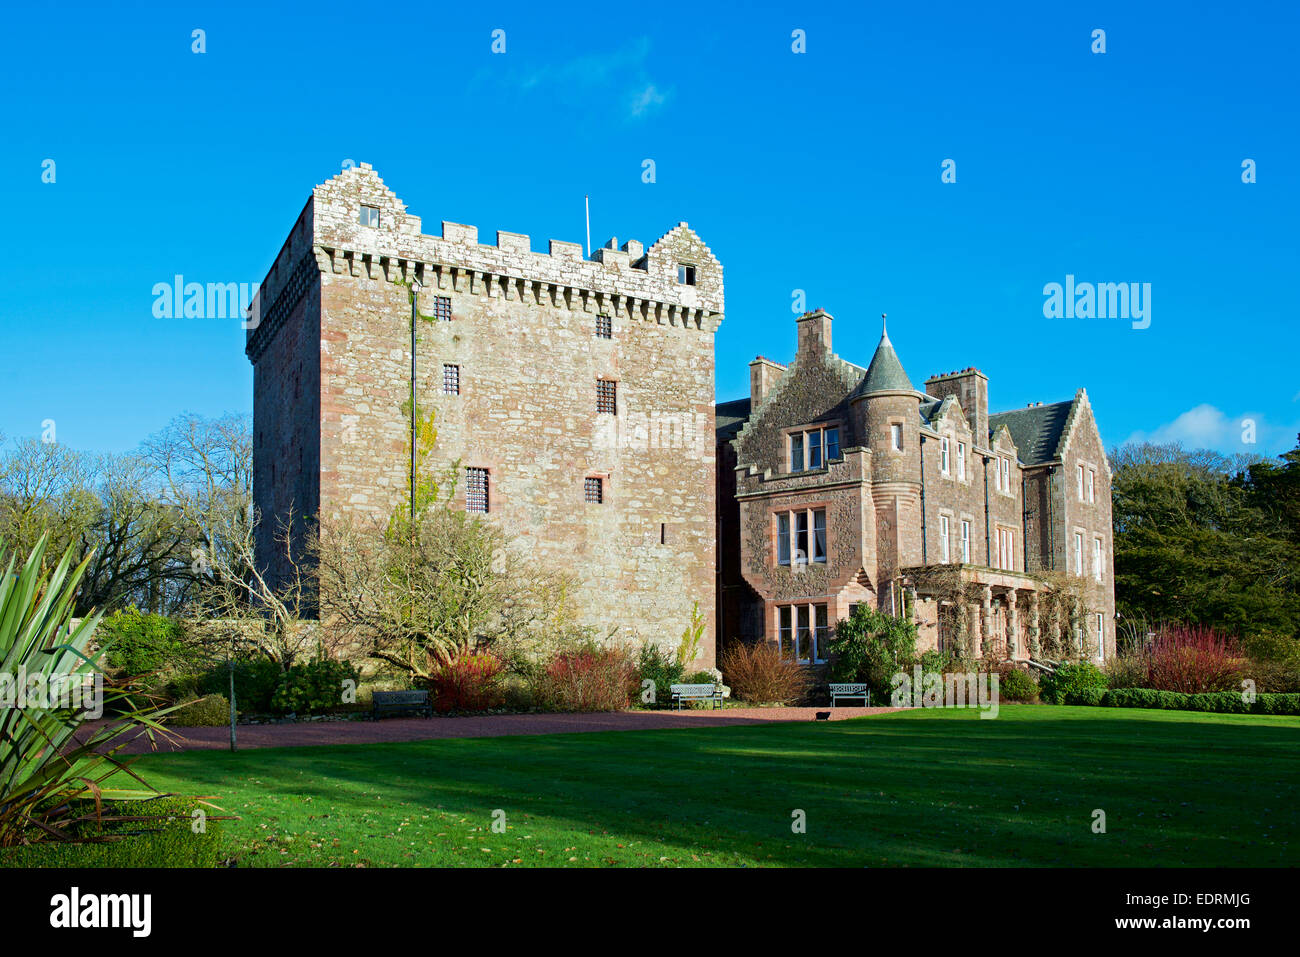 Comlongon Castle Hotel and Wedding Venue, Clarencefield, Dumfries & Galloway, Scotland UK, - Stock Image